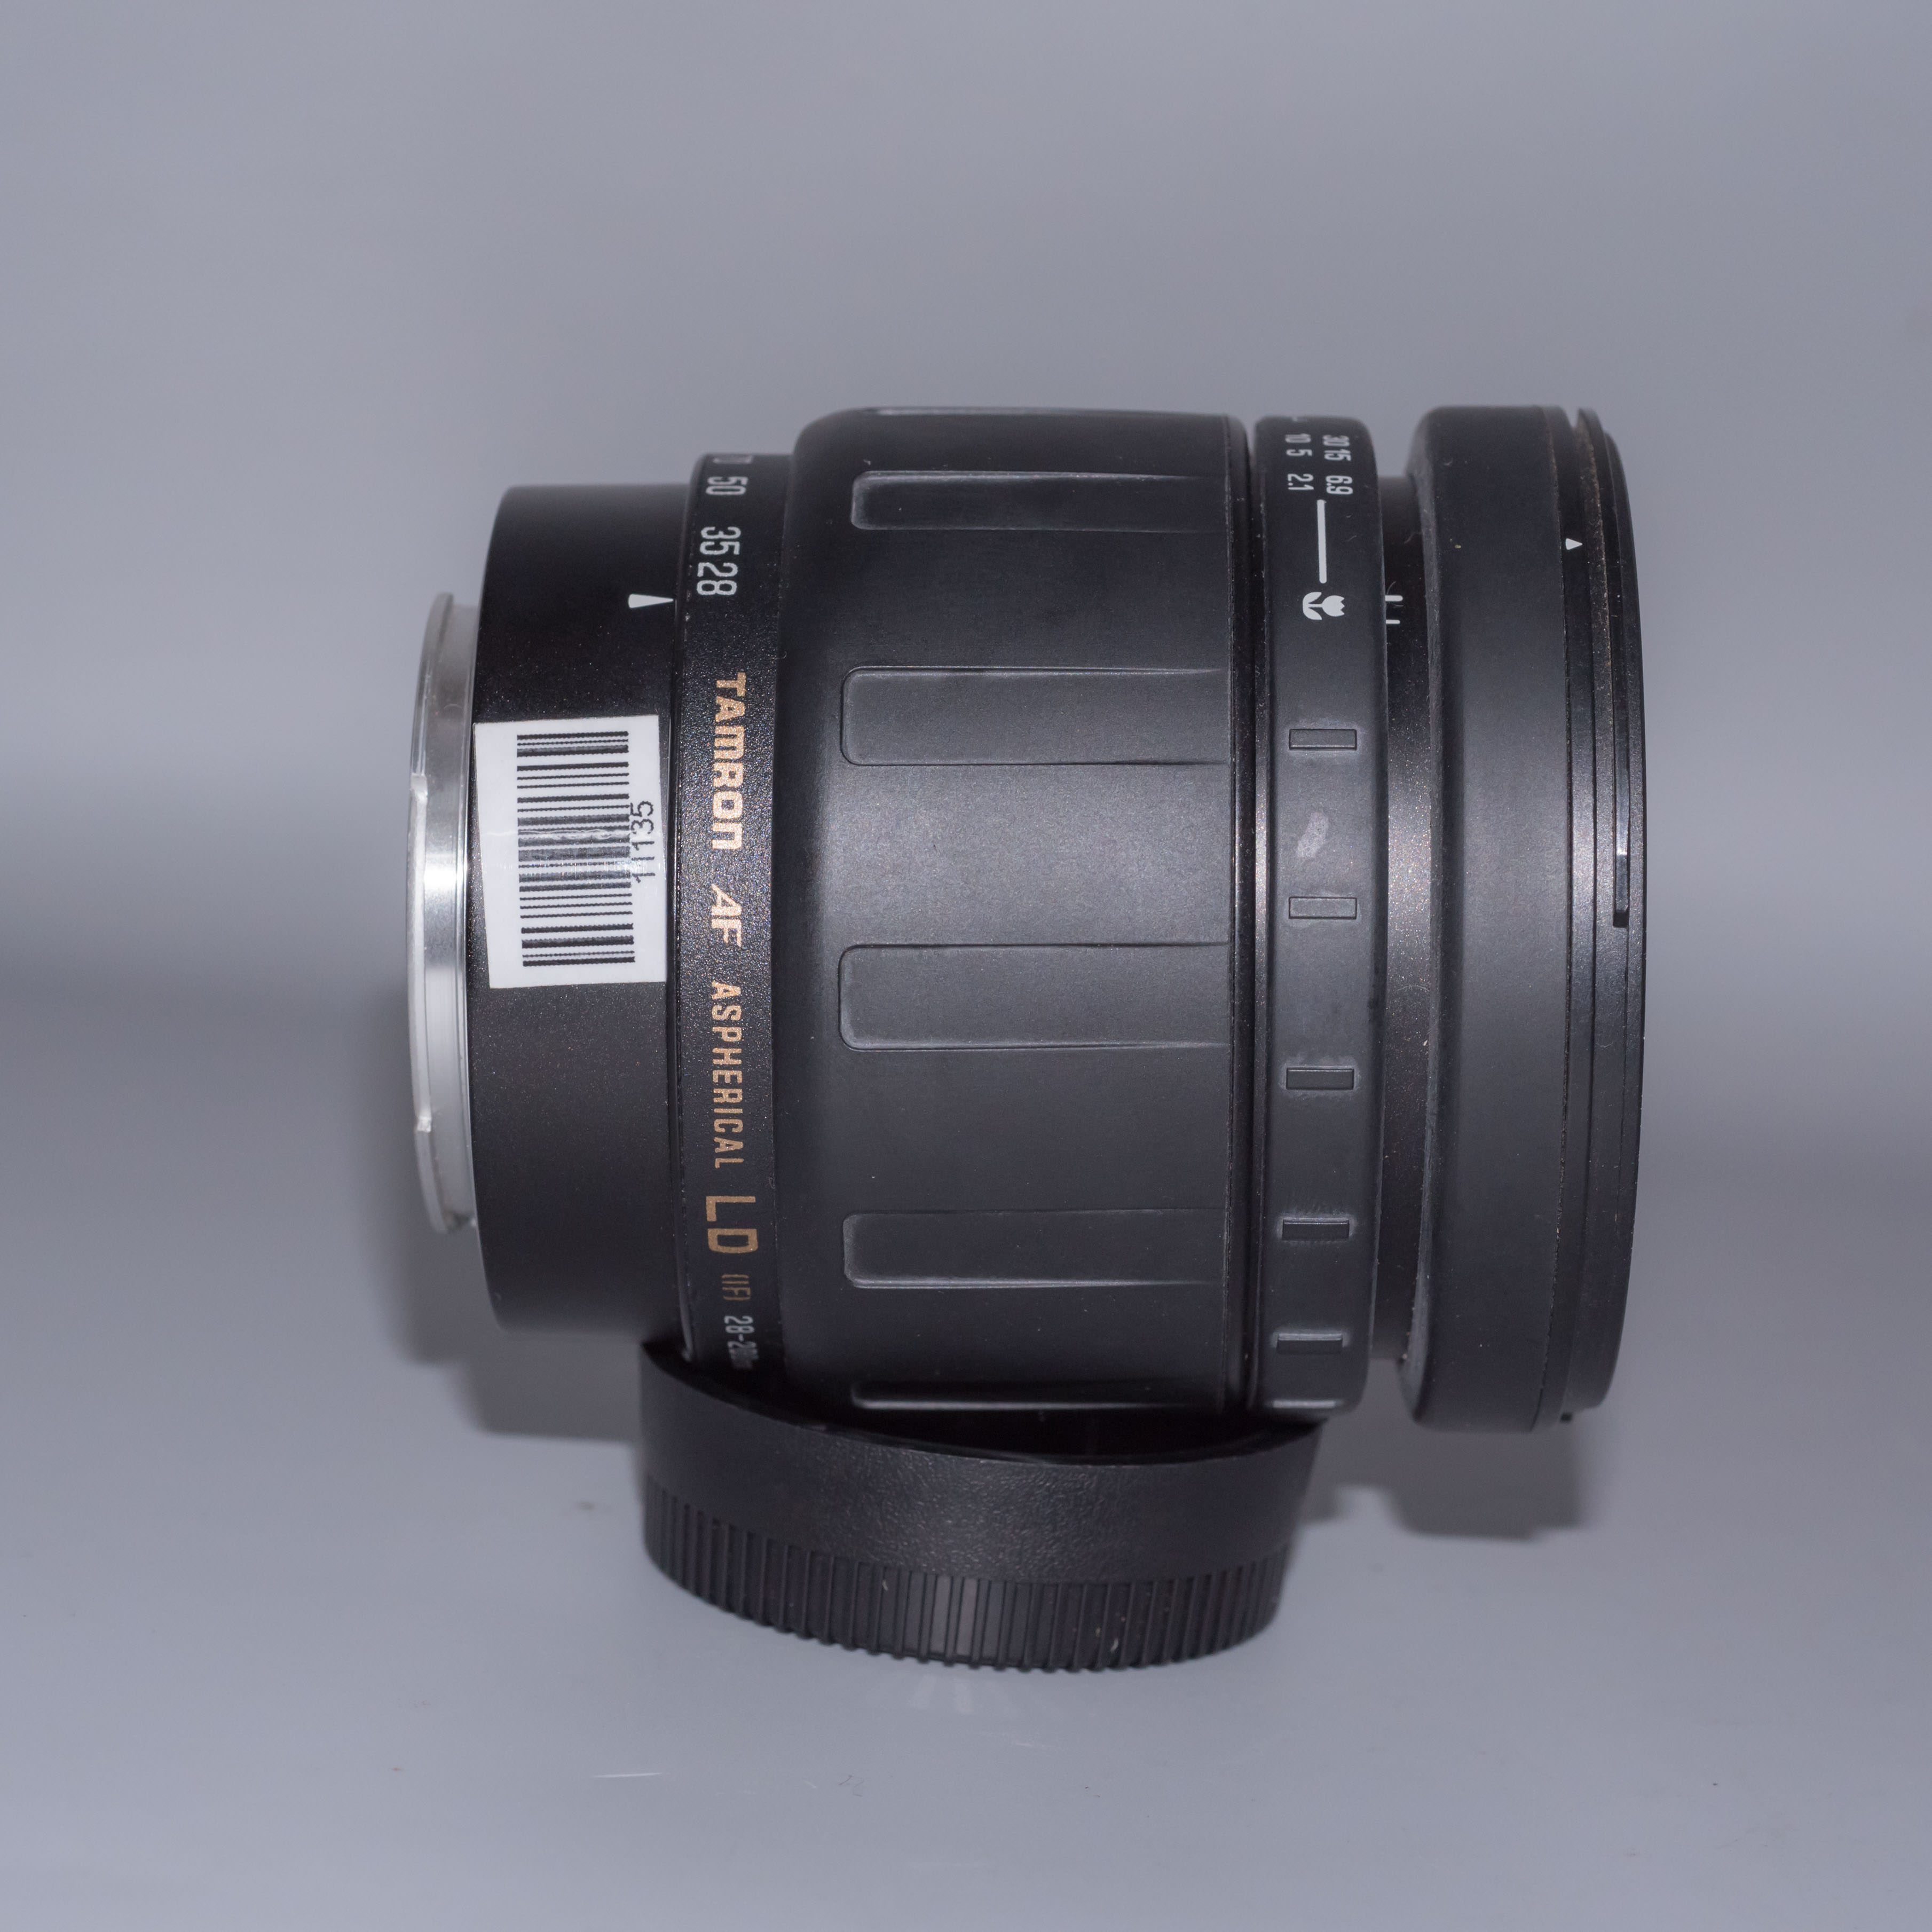 tamron-28-200mm-f3-5-6-3-aspherical-ld-if-af-sony-a-28-300-3-5-5-6-11135